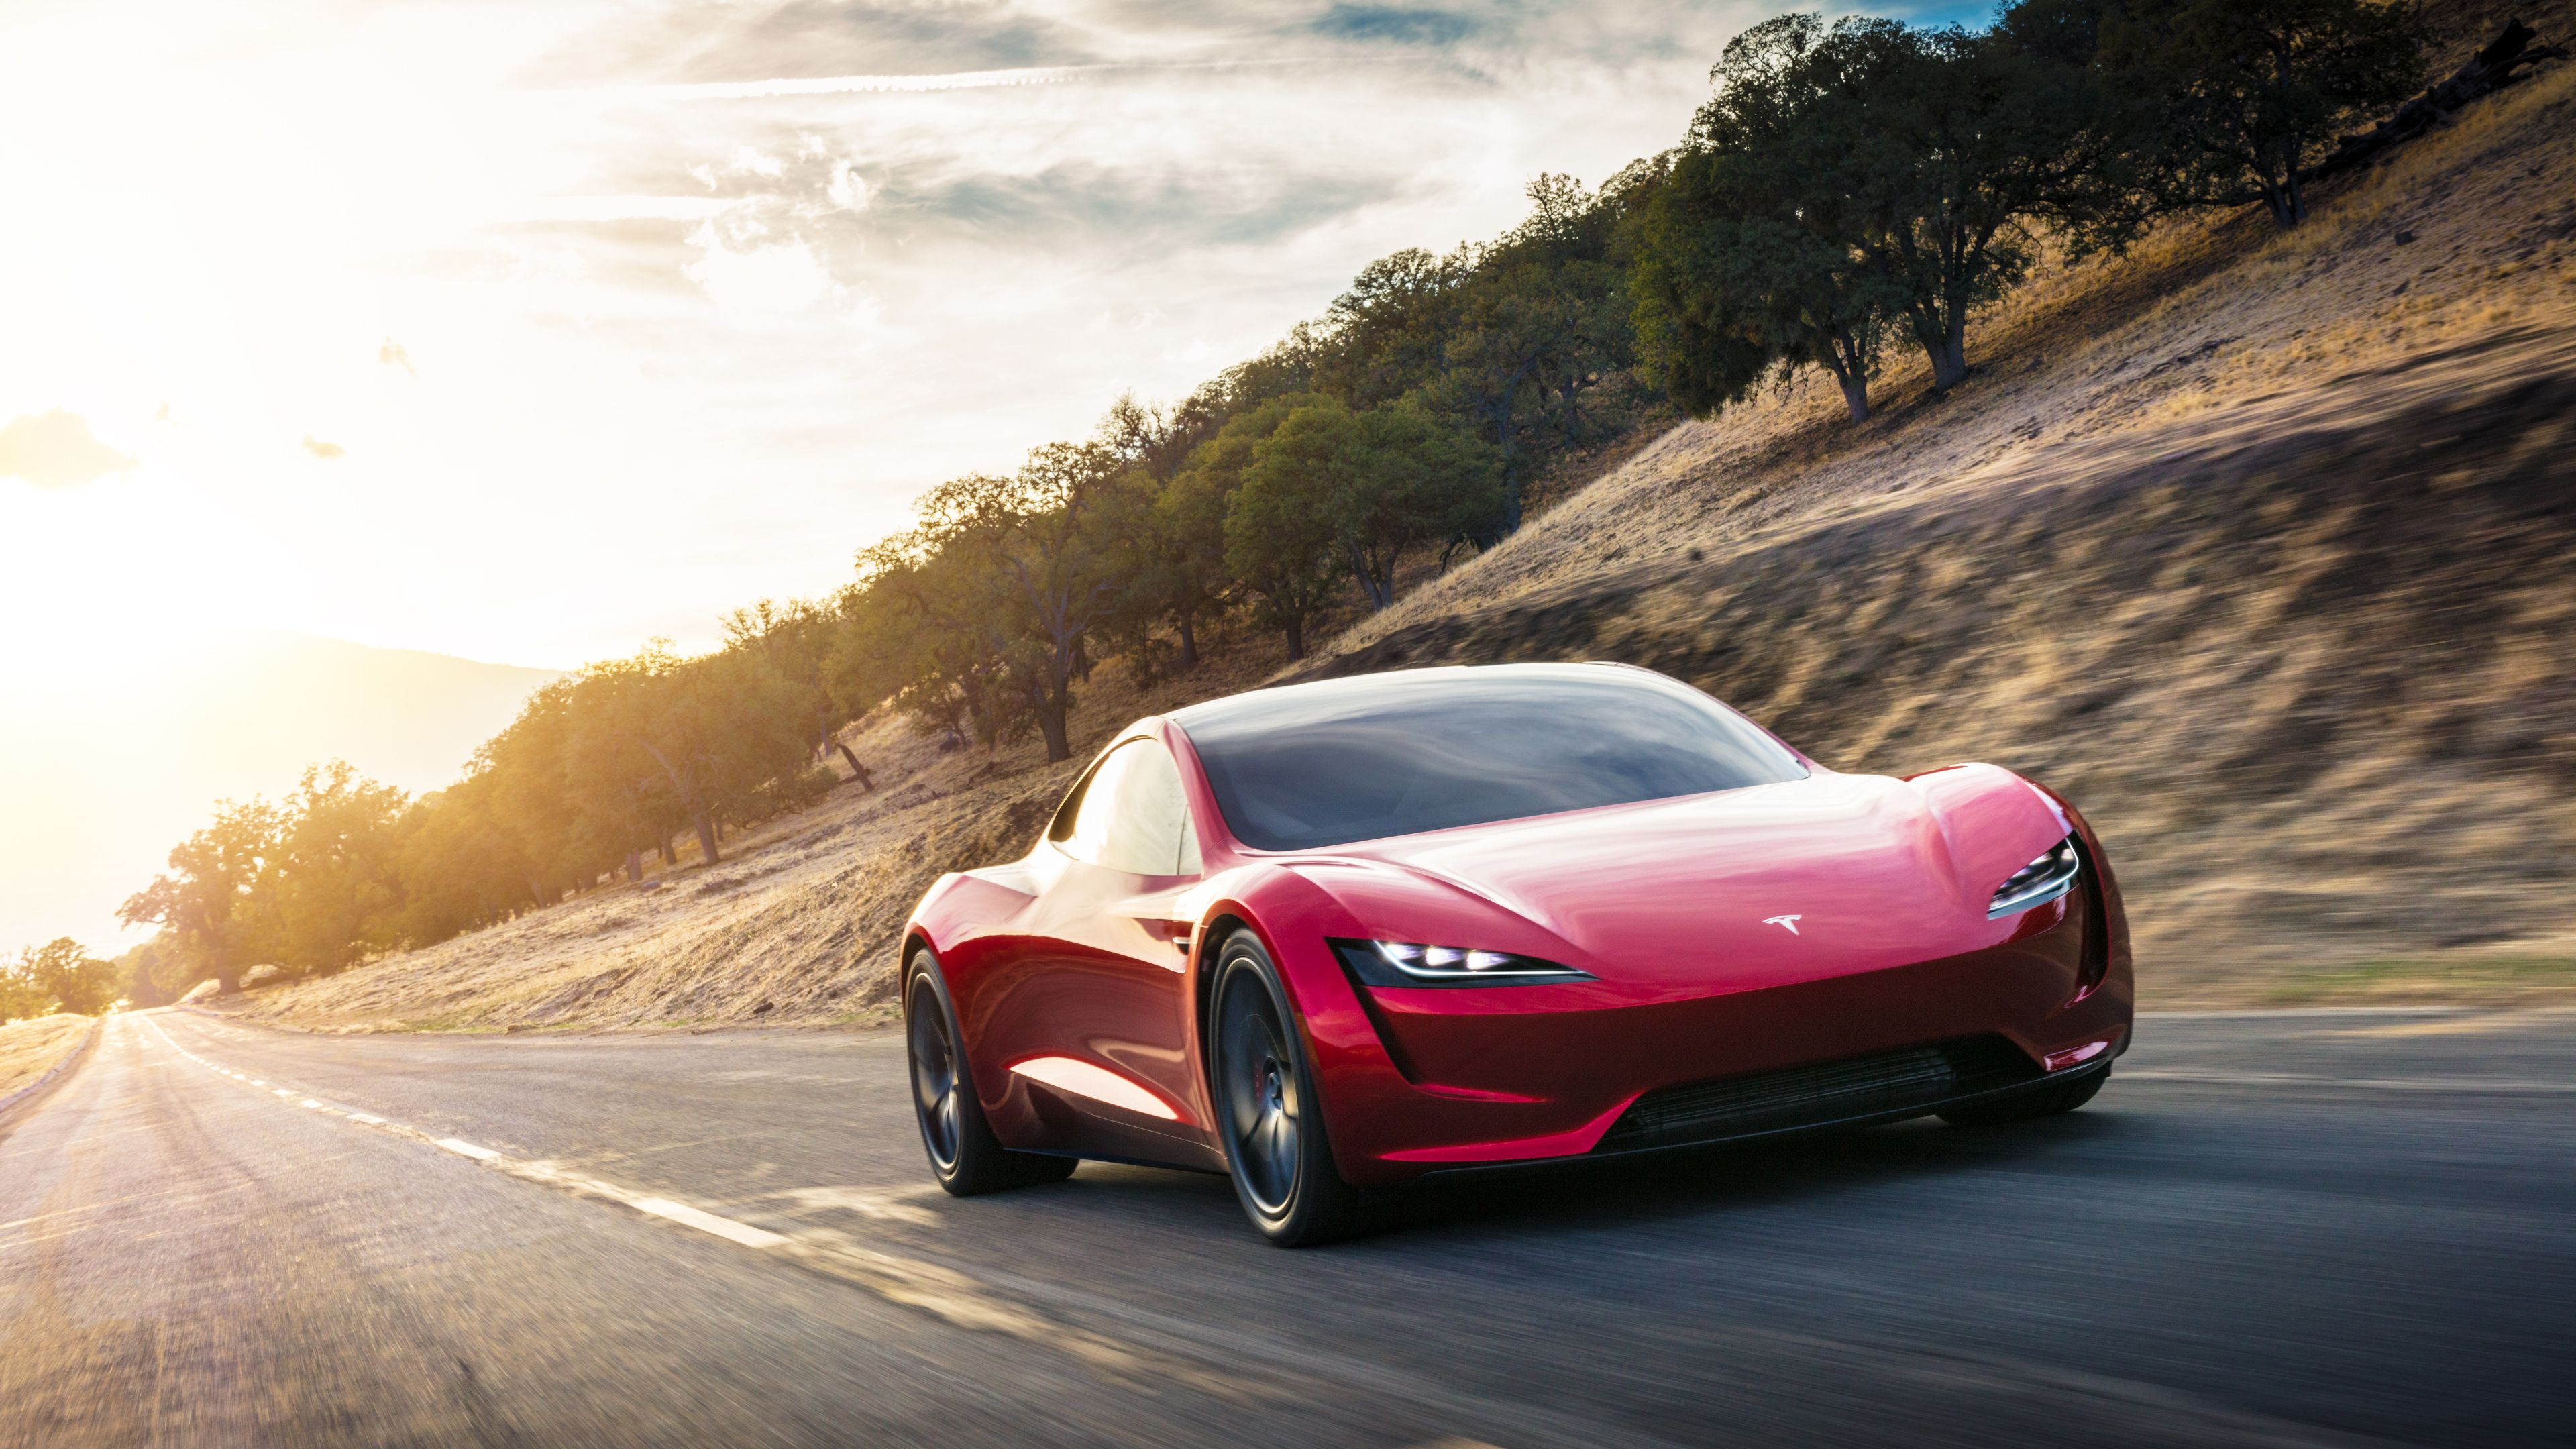 Tesla Roadster Wallpapers   Top Tesla Roadster Backgrounds 3840x2160